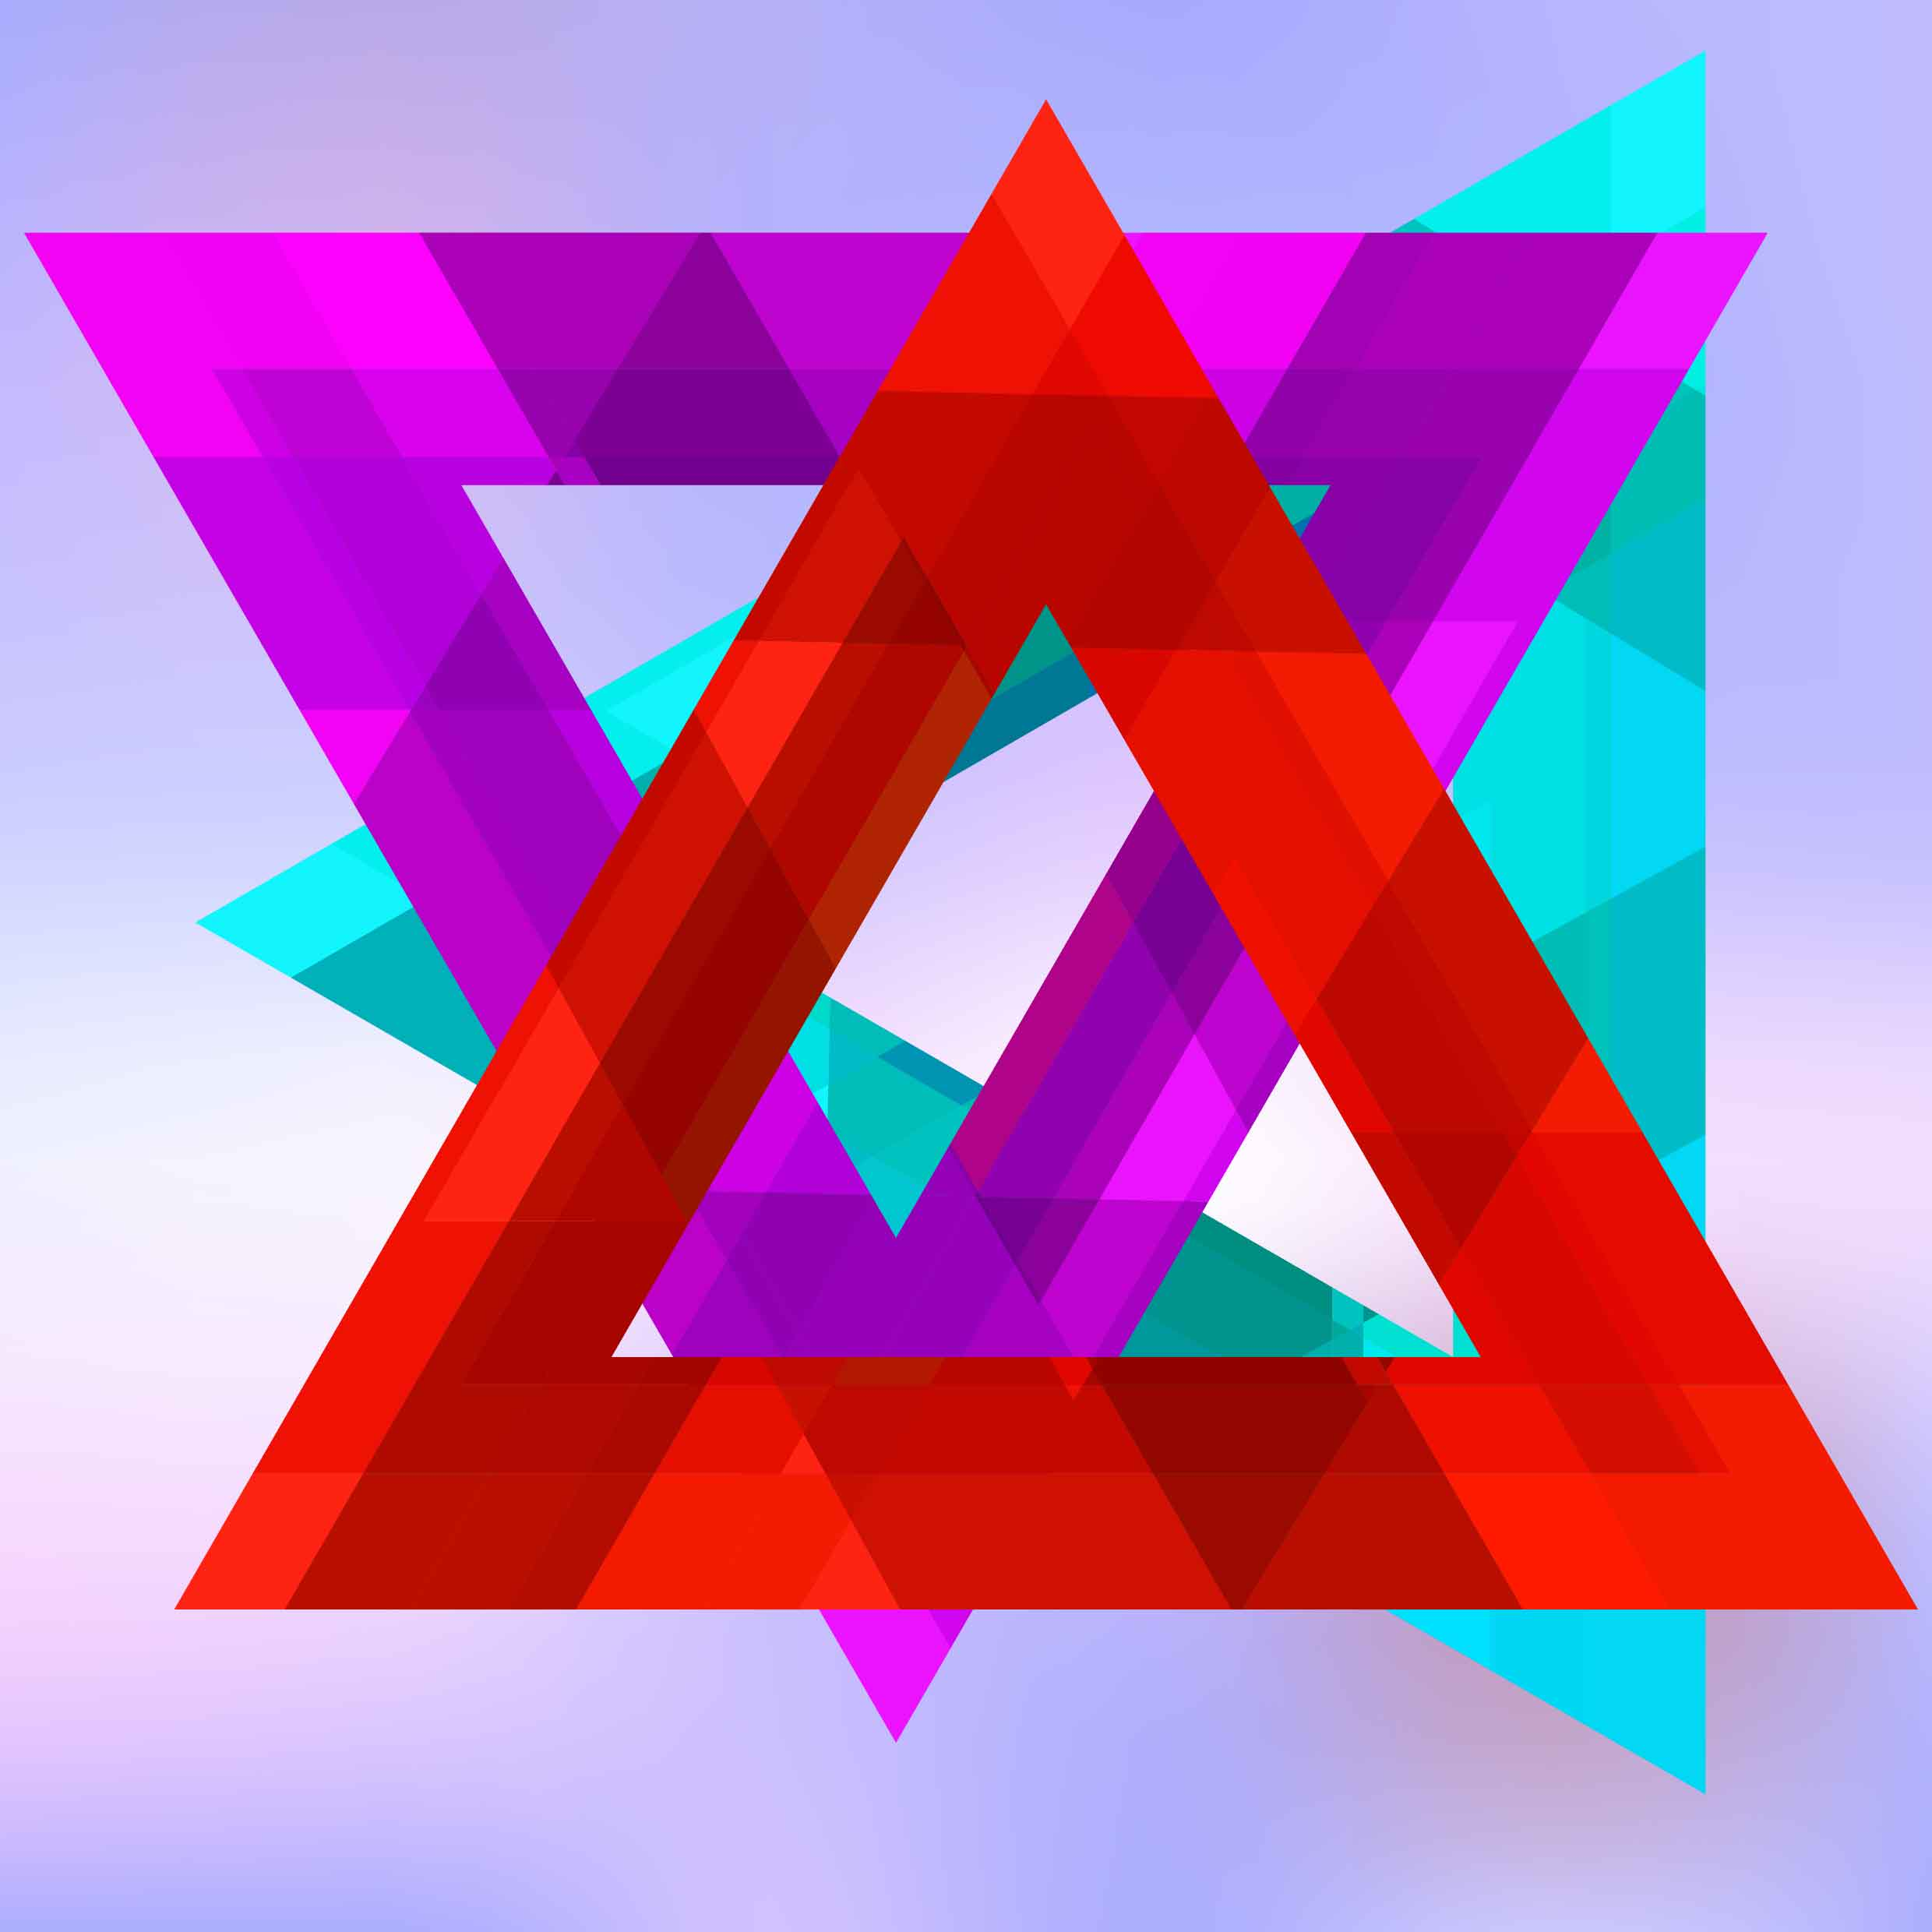 Abstract Triangles Background - Download Free Vectors ...